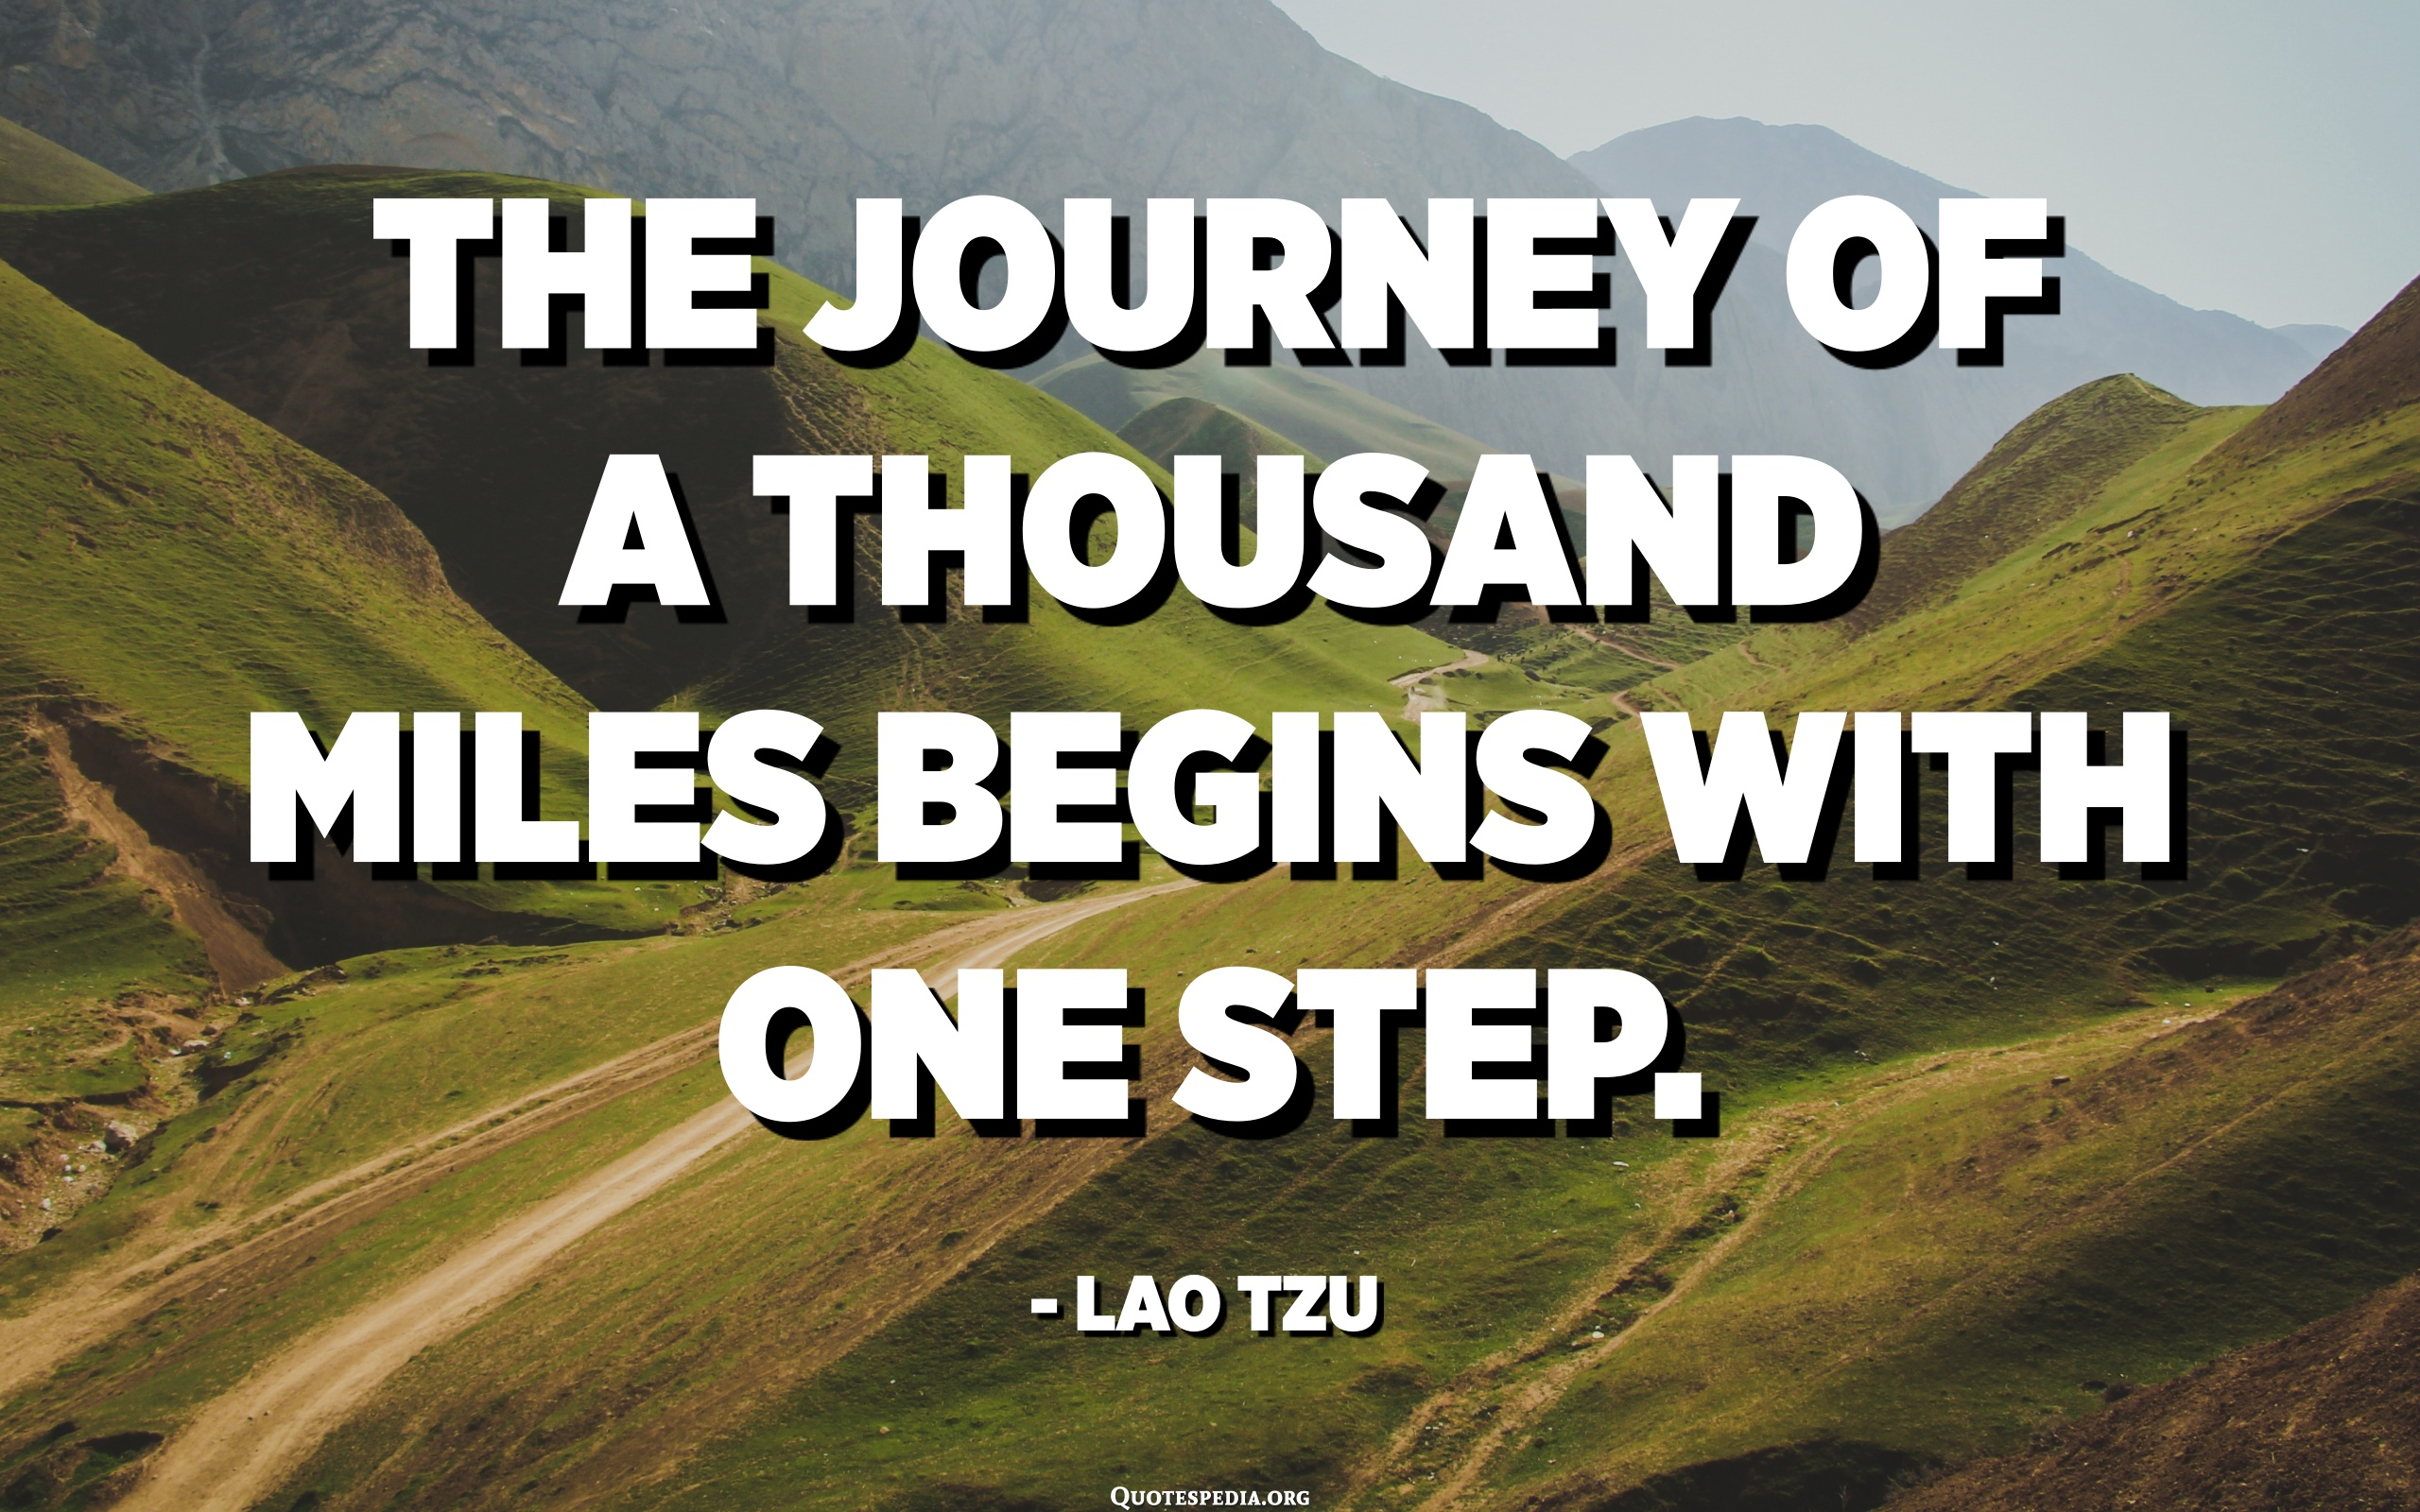 The journey of a thousand miles begins with one step. - Lao Tzu ...